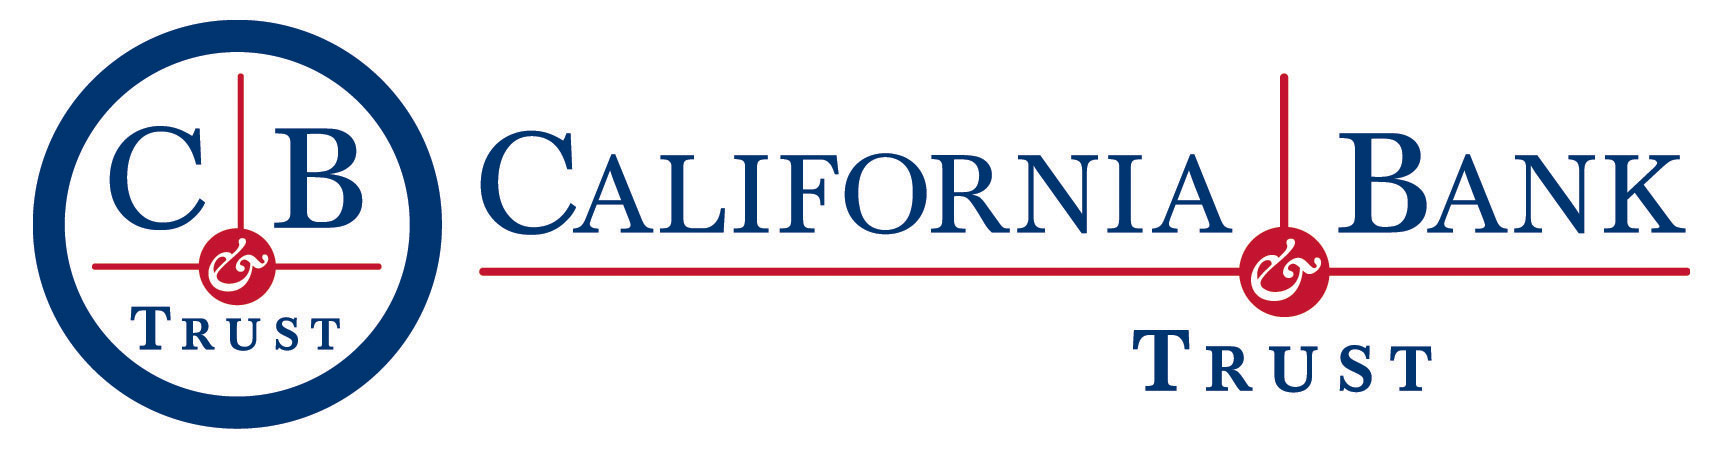 California_Bank_Trust_logo